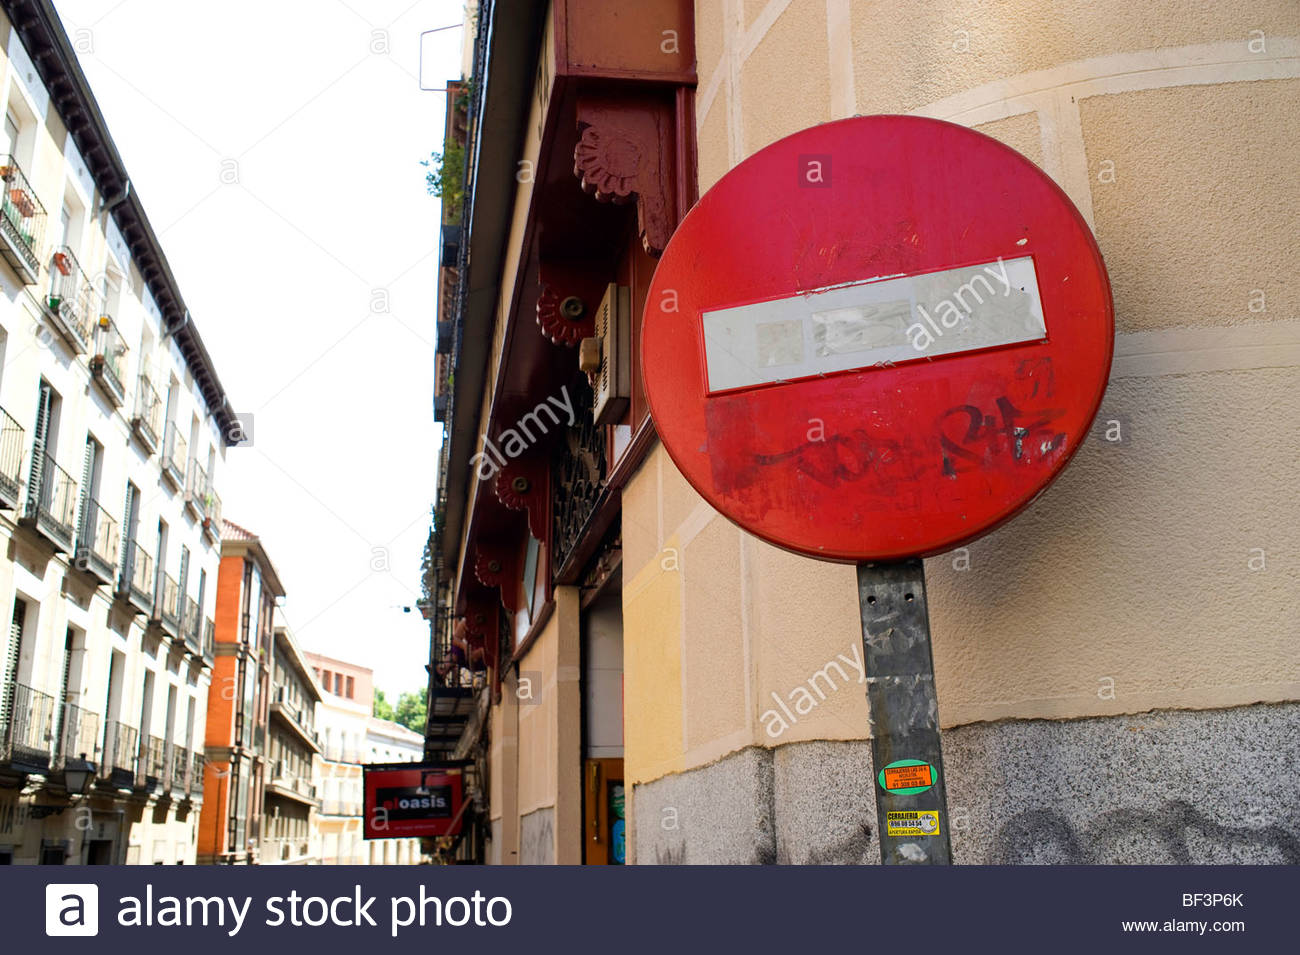 No Entry road sign on the street in Madrid - Stock Image